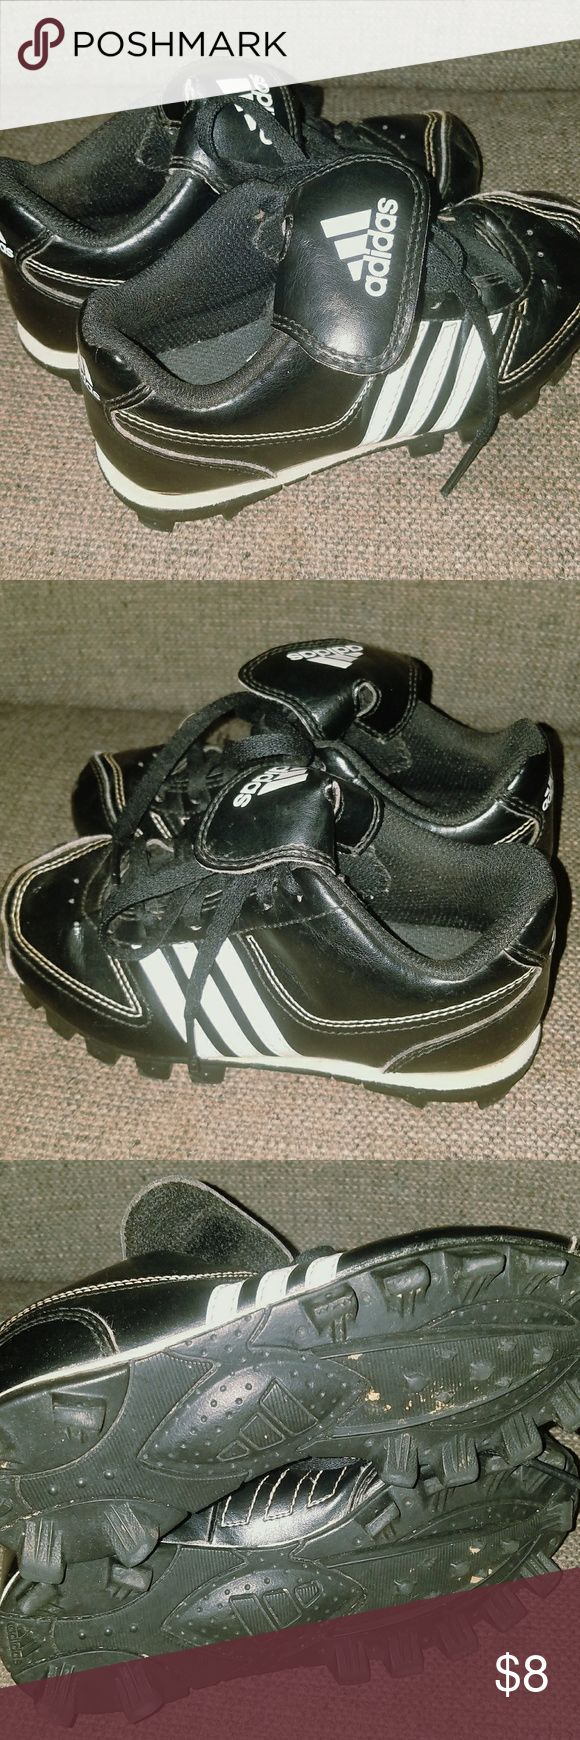 Toddler size 11 1/2 Adidas Wee Ball Cleats These claims are an excellent used condition from a smoke and pet-free home. adidas Shoes